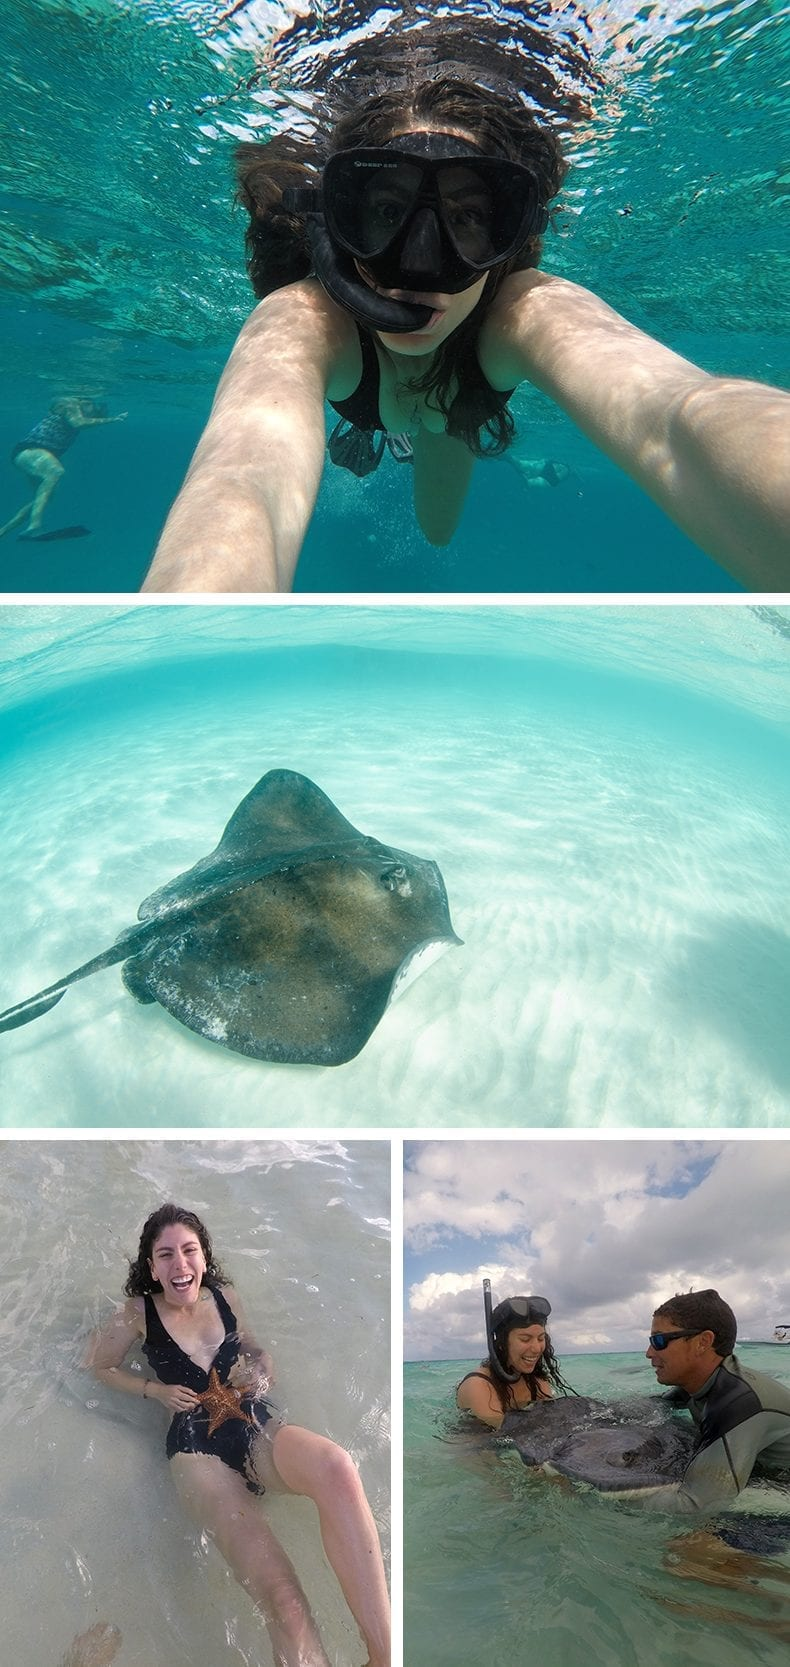 Visiting Grand Cayman for the first time? Here is a full travel guide on what to do in Grand Cayman along with the best restaurants, workouts and wellness tips for your next visit!